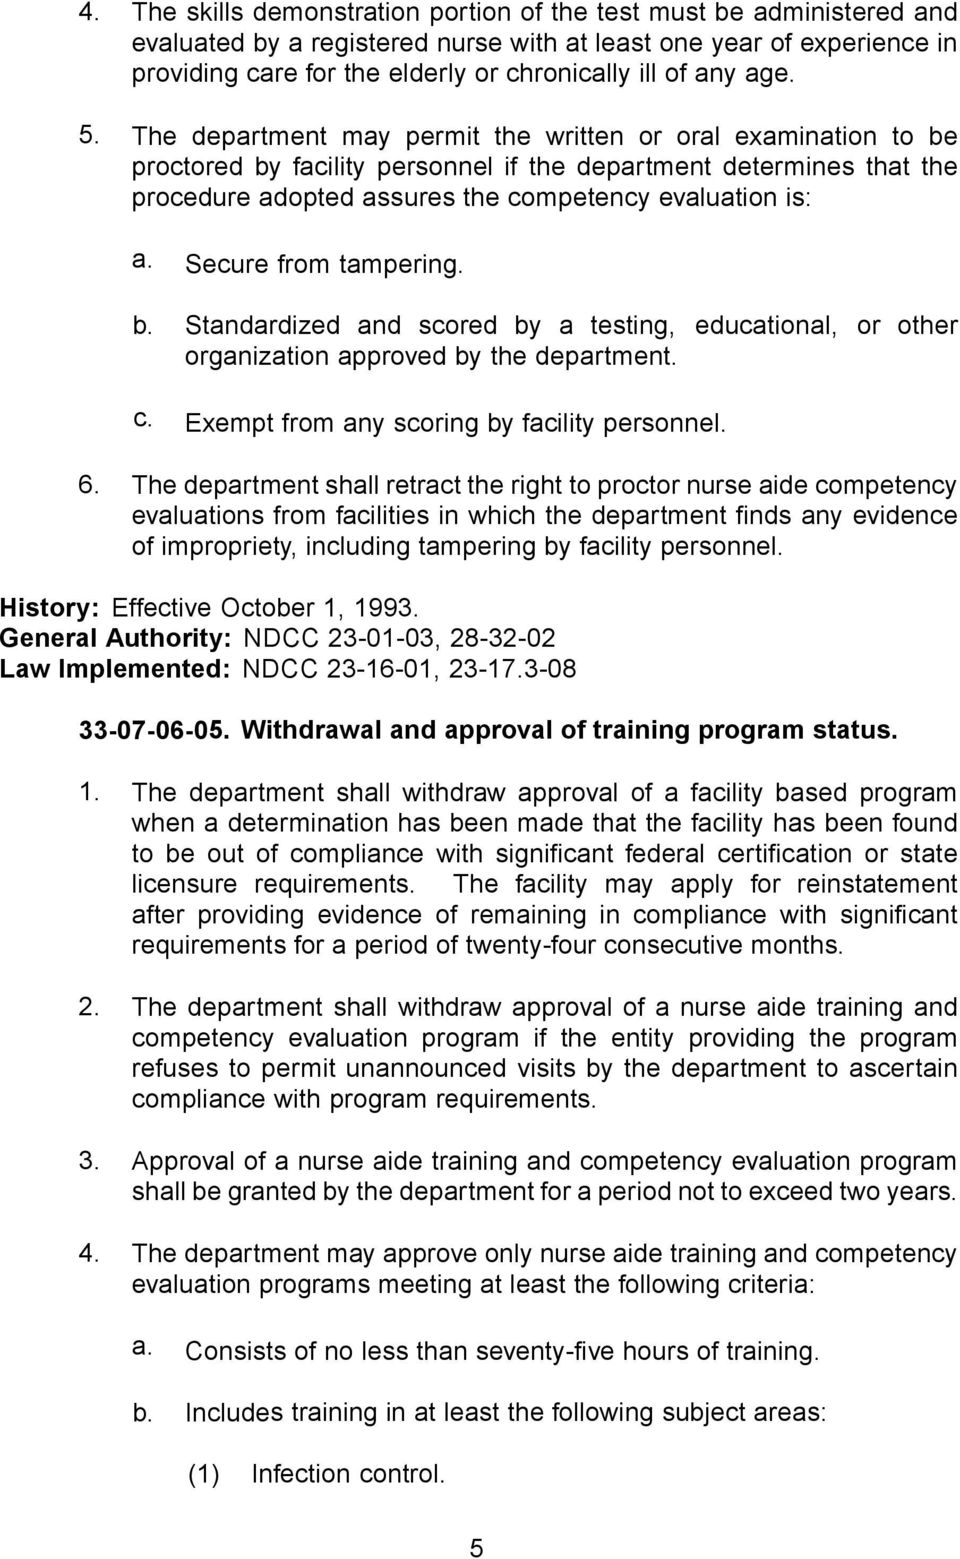 The department may permit the written or oral examination to be proctored by facility personnel if the department determines that the procedure adopted assures the competency evaluation is: a.